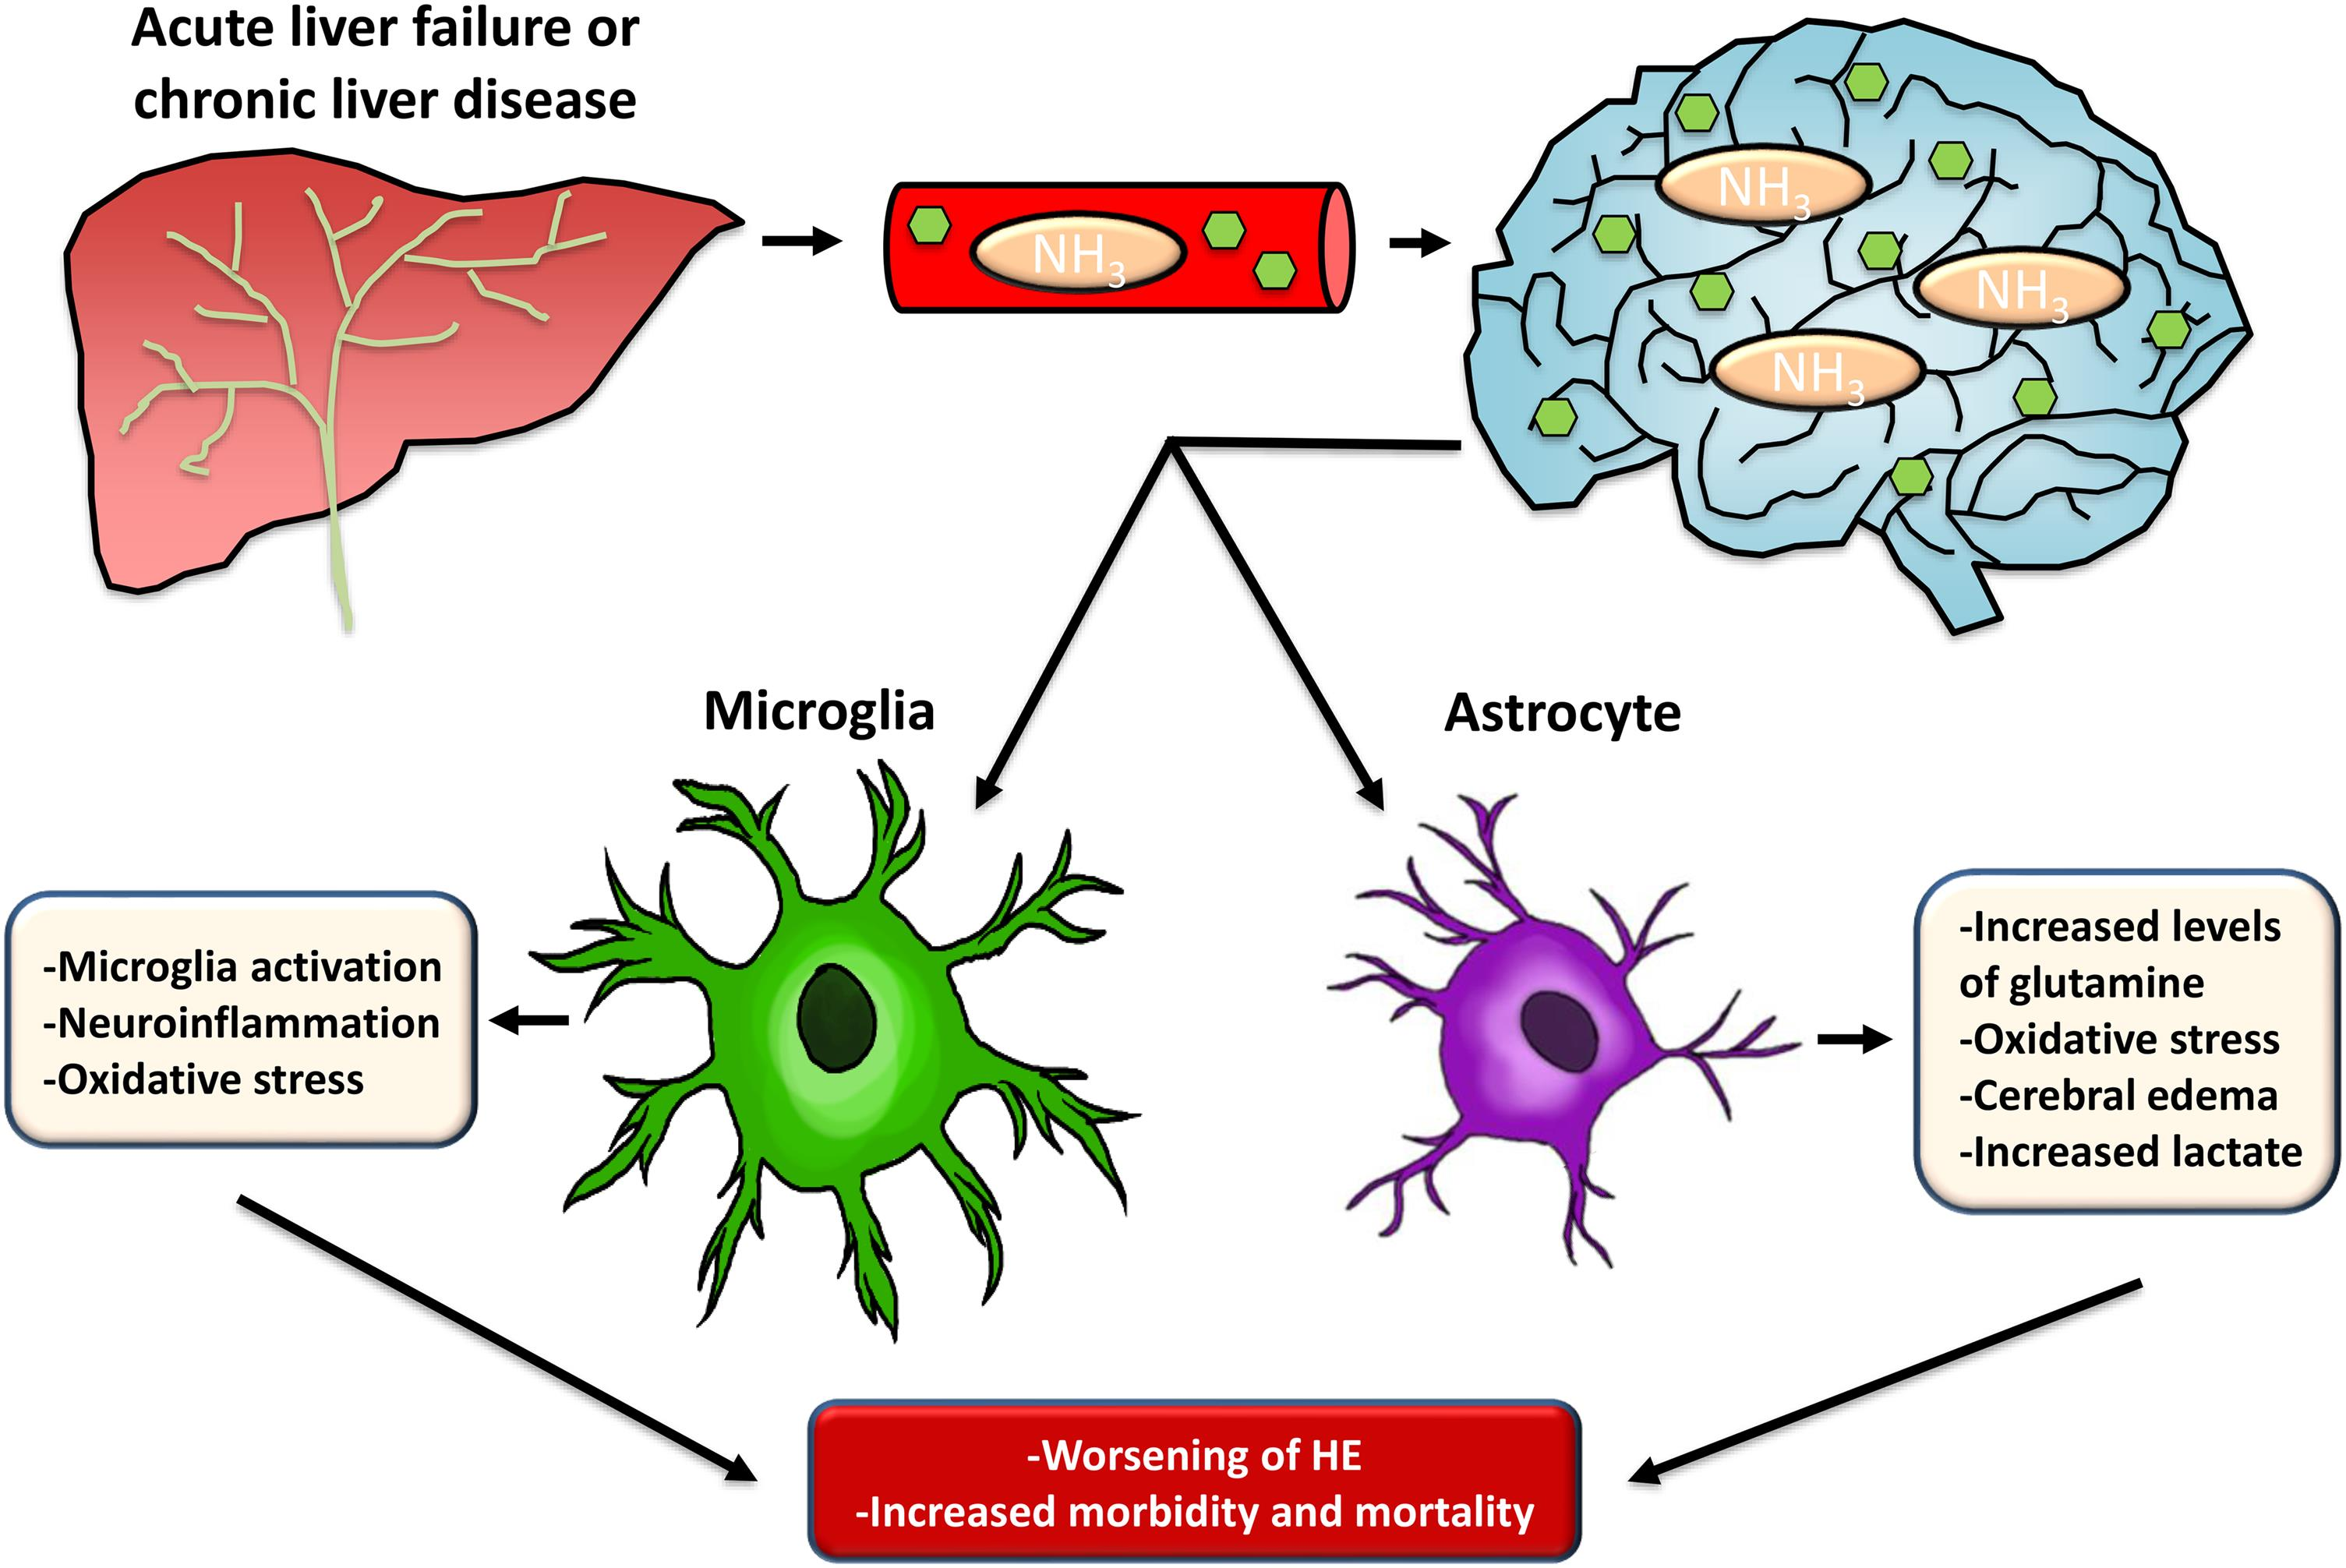 Summary of the involvement of microglia and astrocytes in HE pathology.